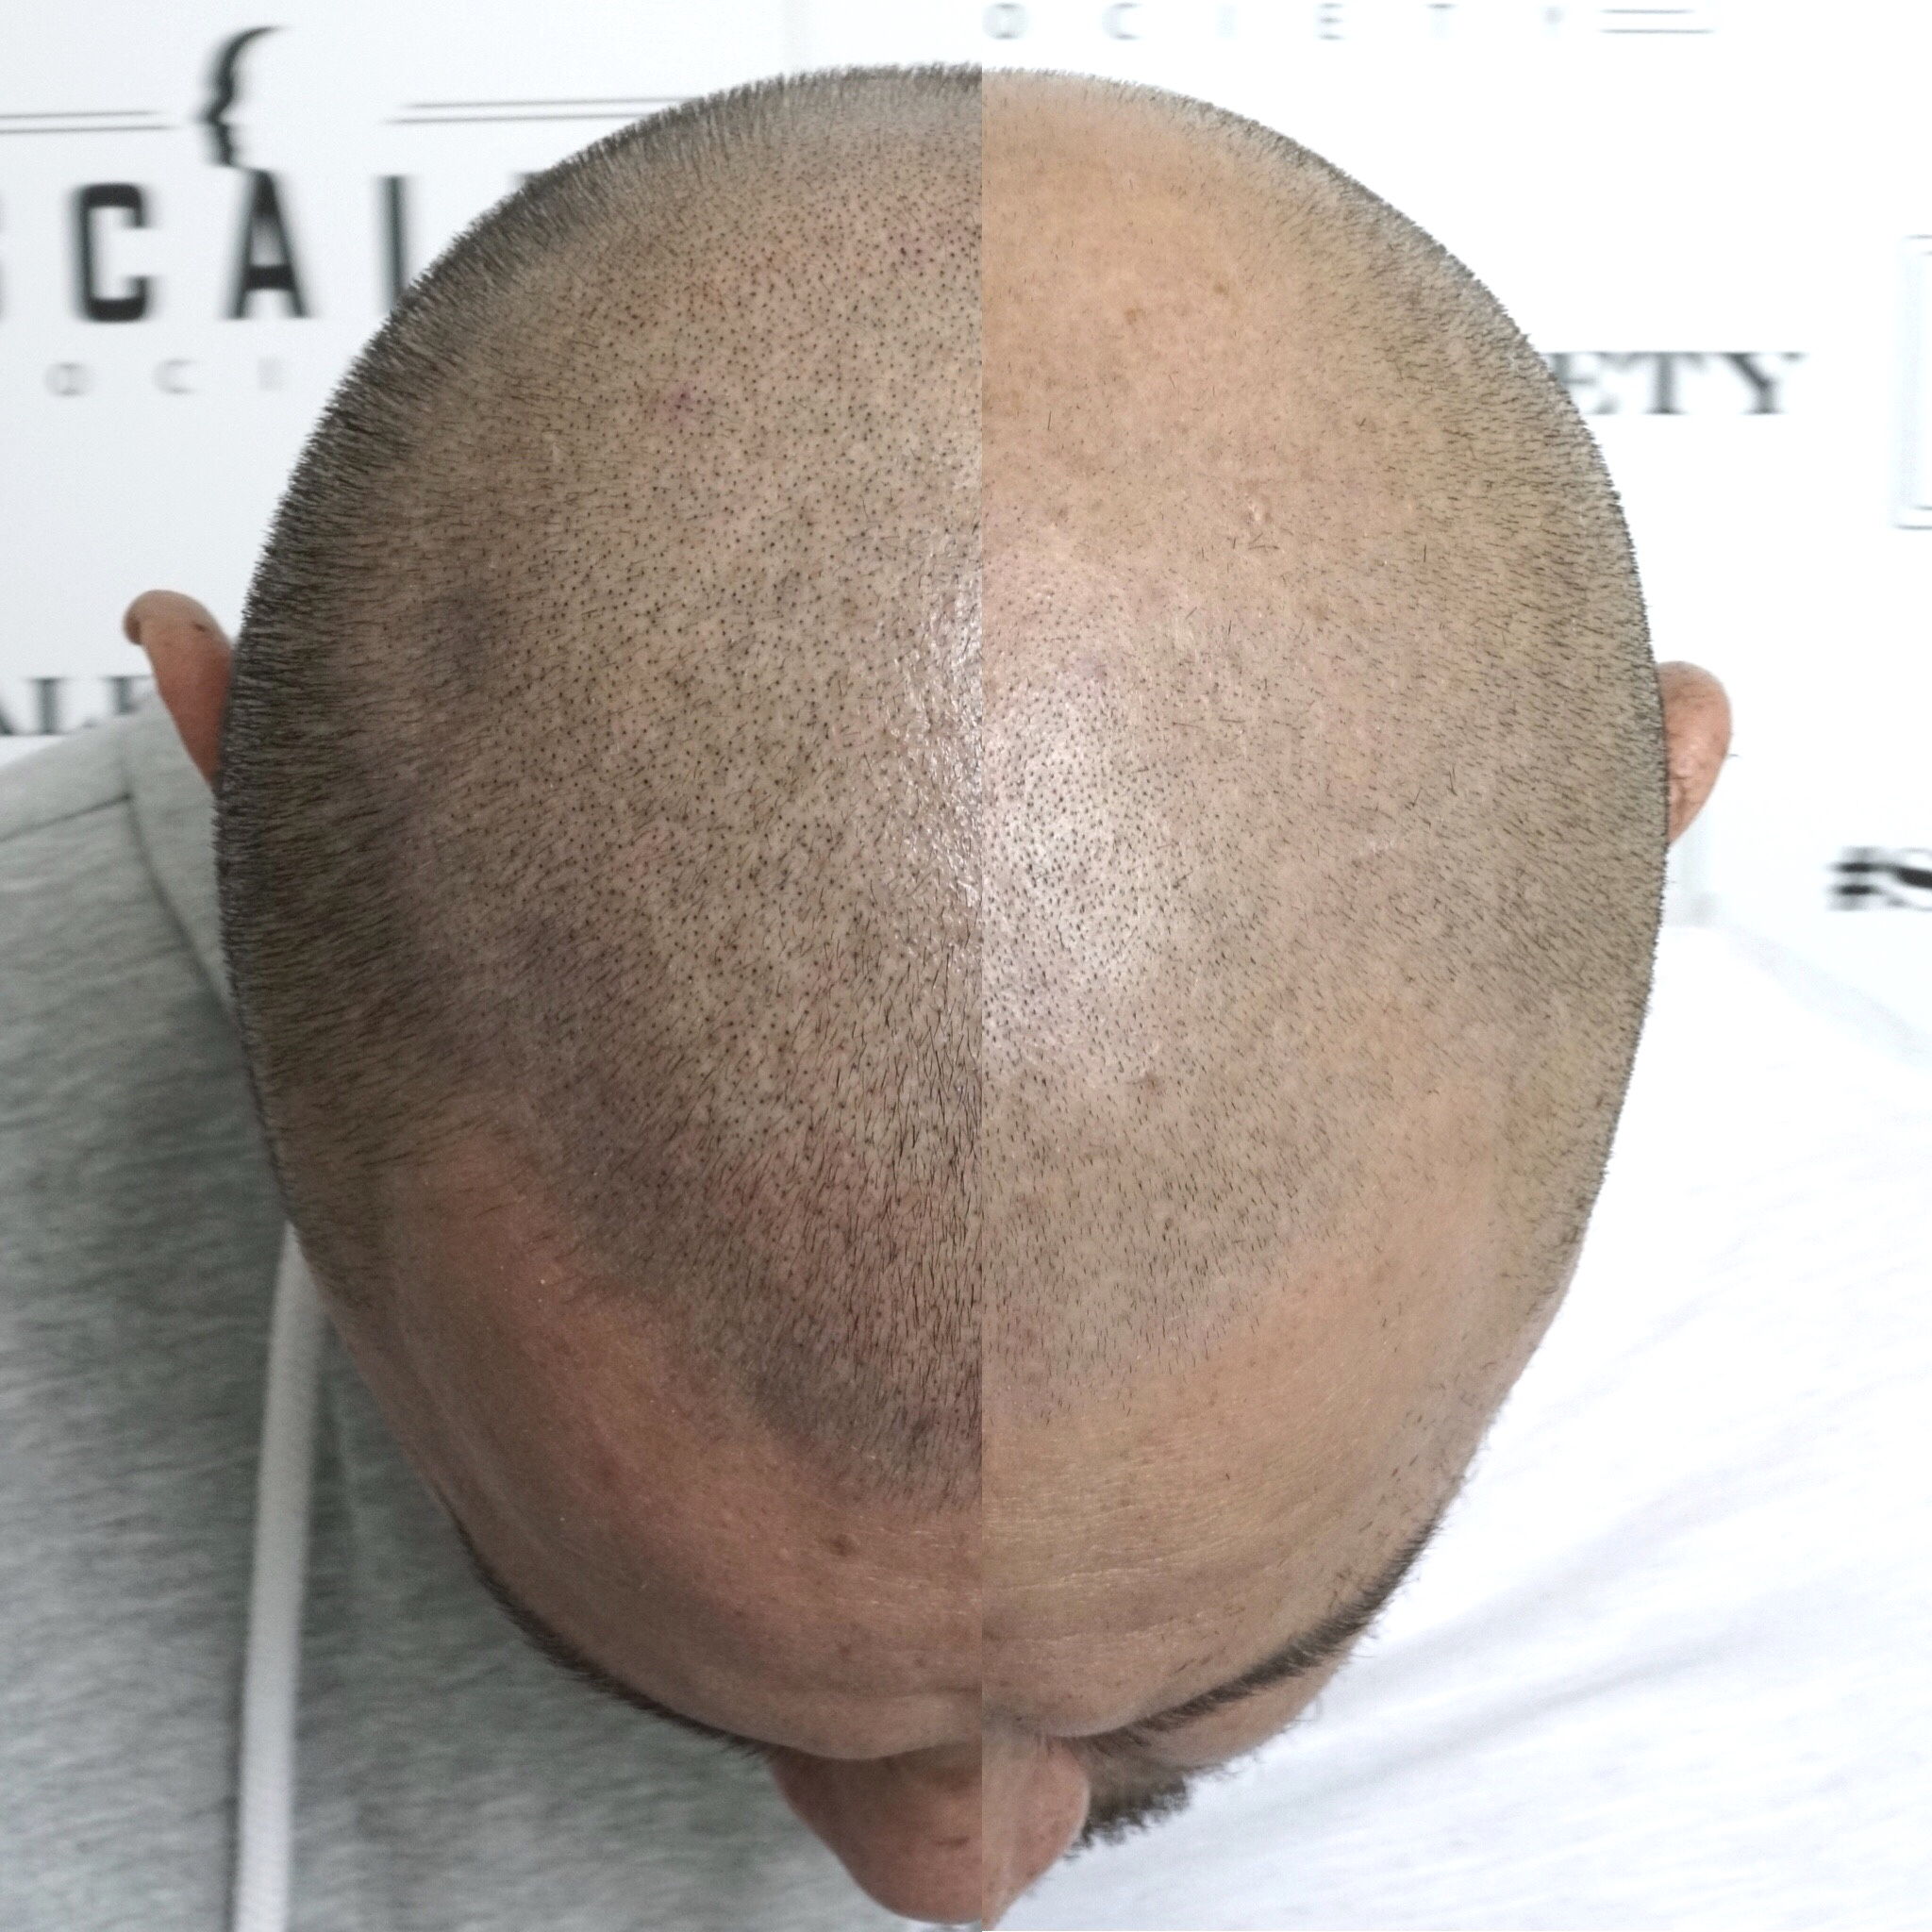 Male 30. This density was achieved after the first session! Micropigment is guaranteed to make difference. Unlike invasive hair transplants that are more expensive and not guaranteed to work.